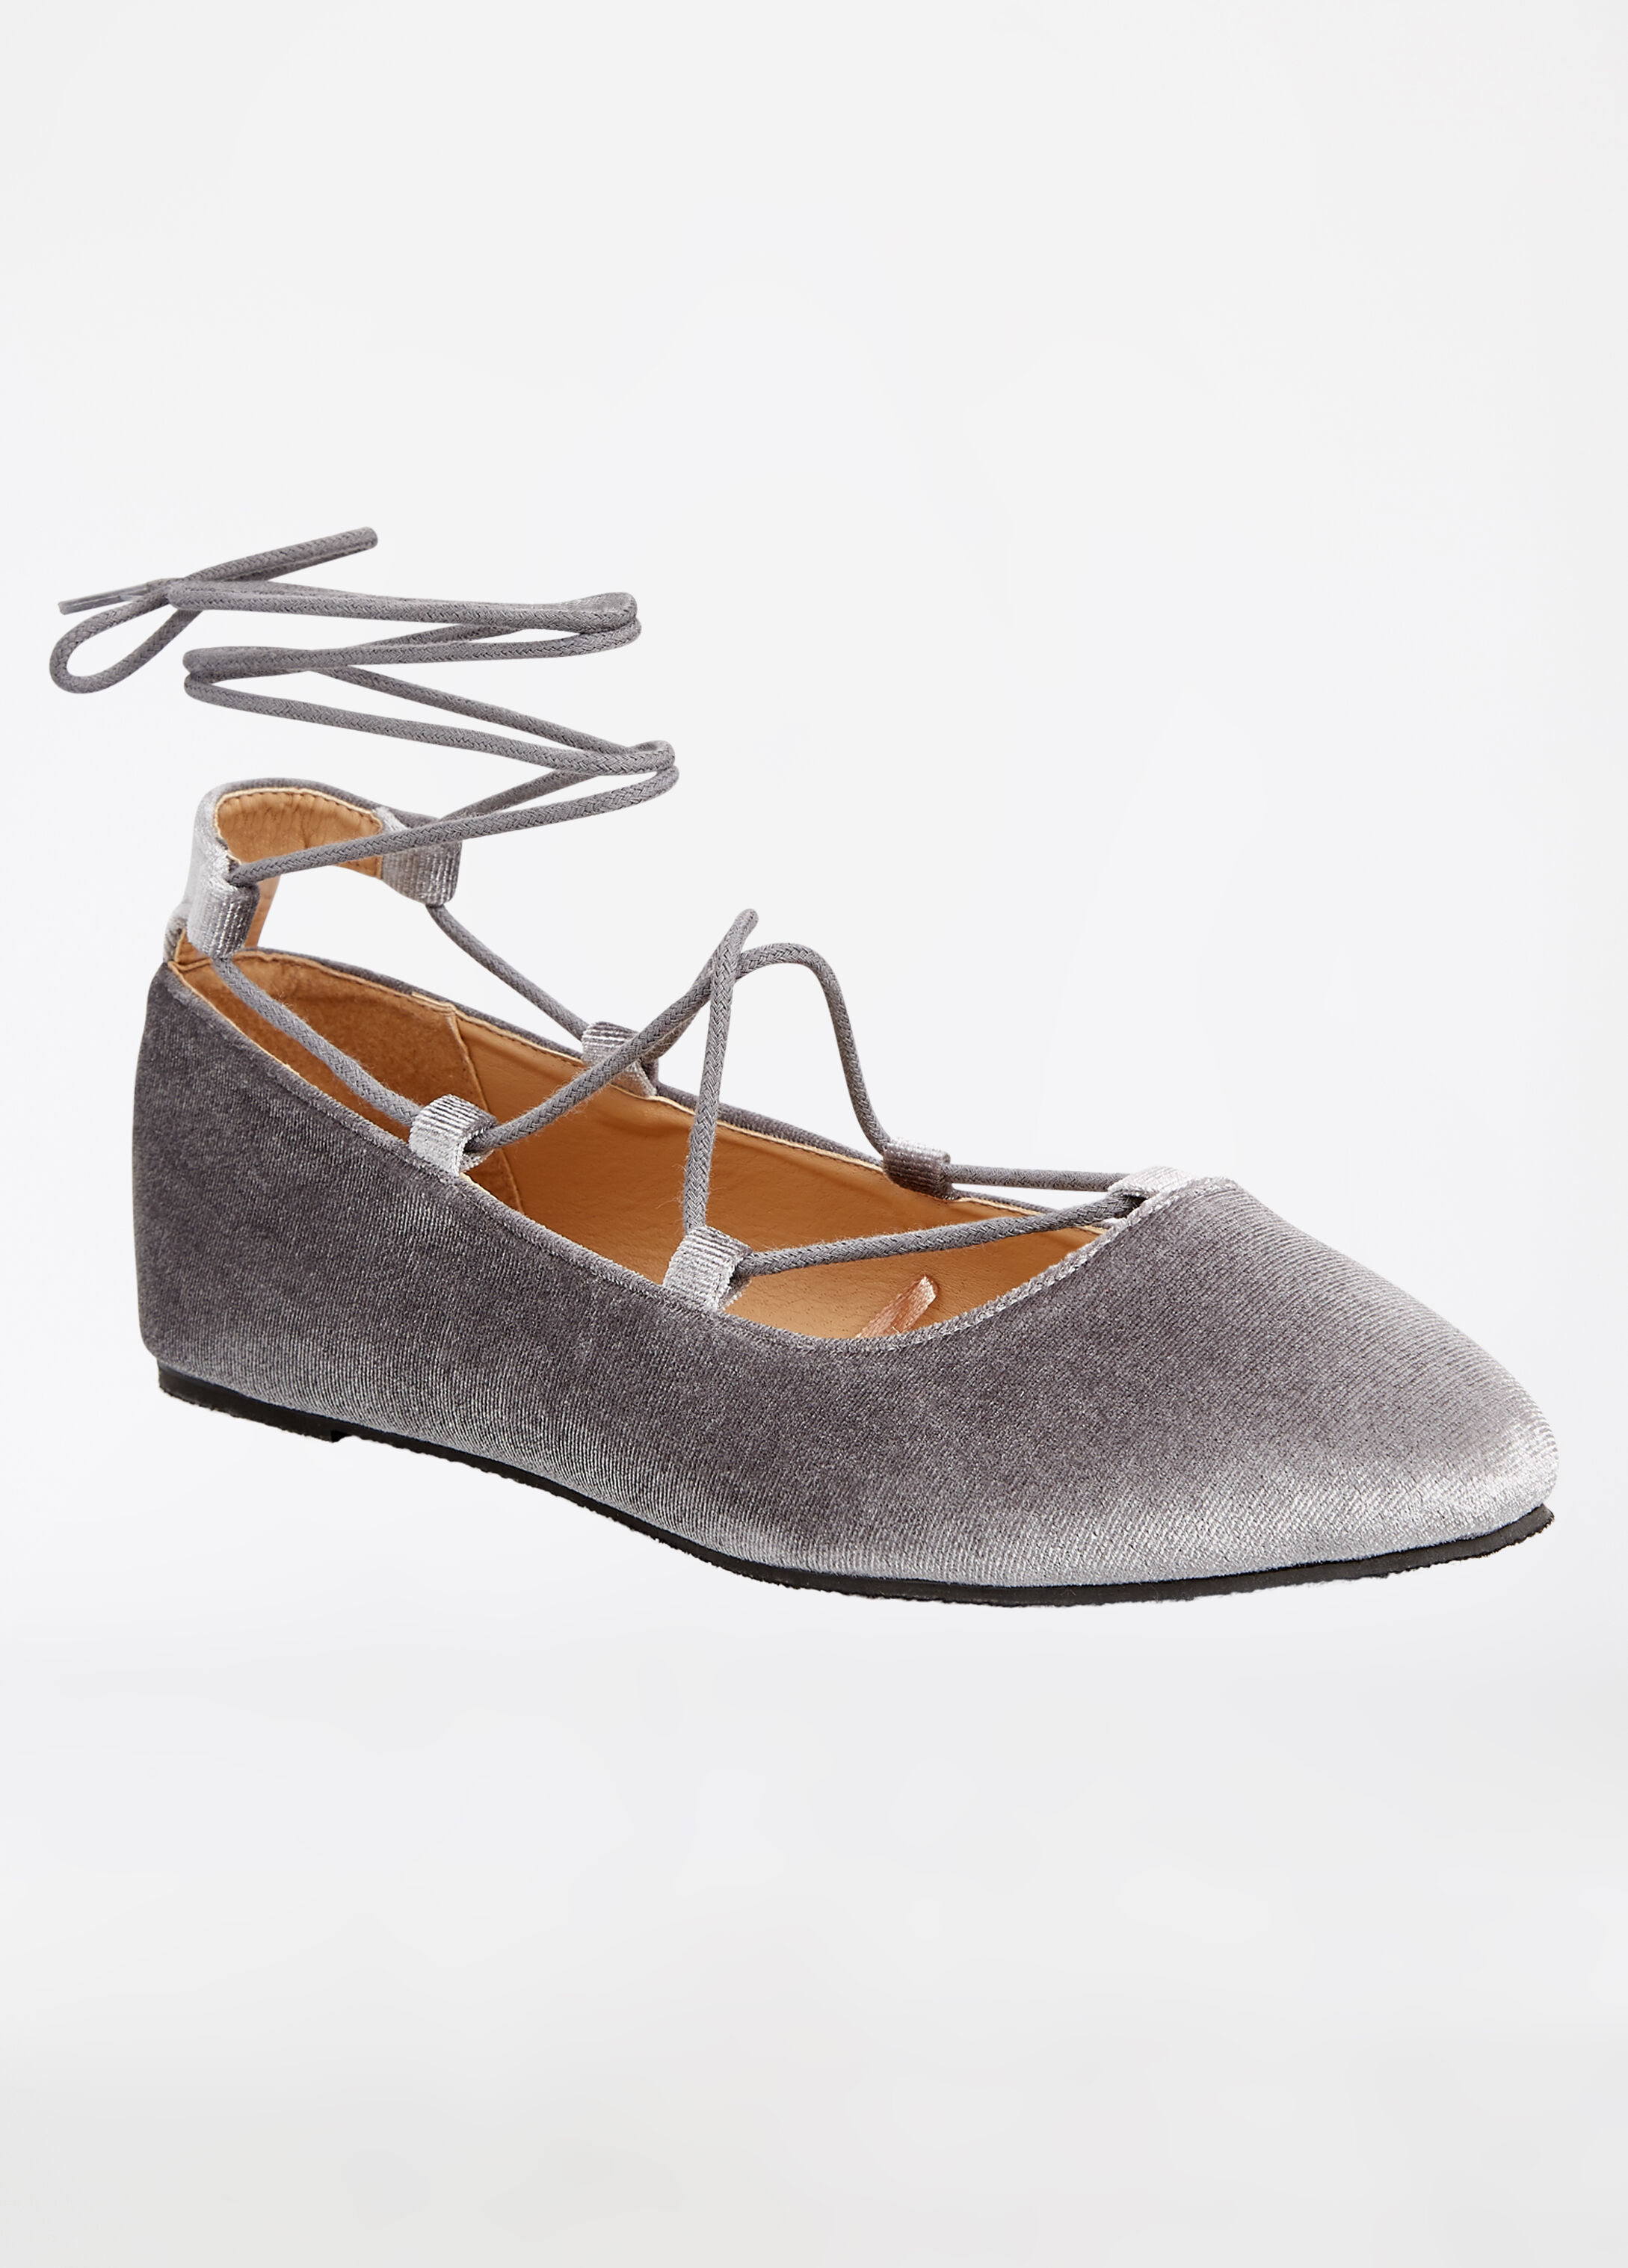 Velvet Lace Up Flat - Wide Width Grey - Clearance